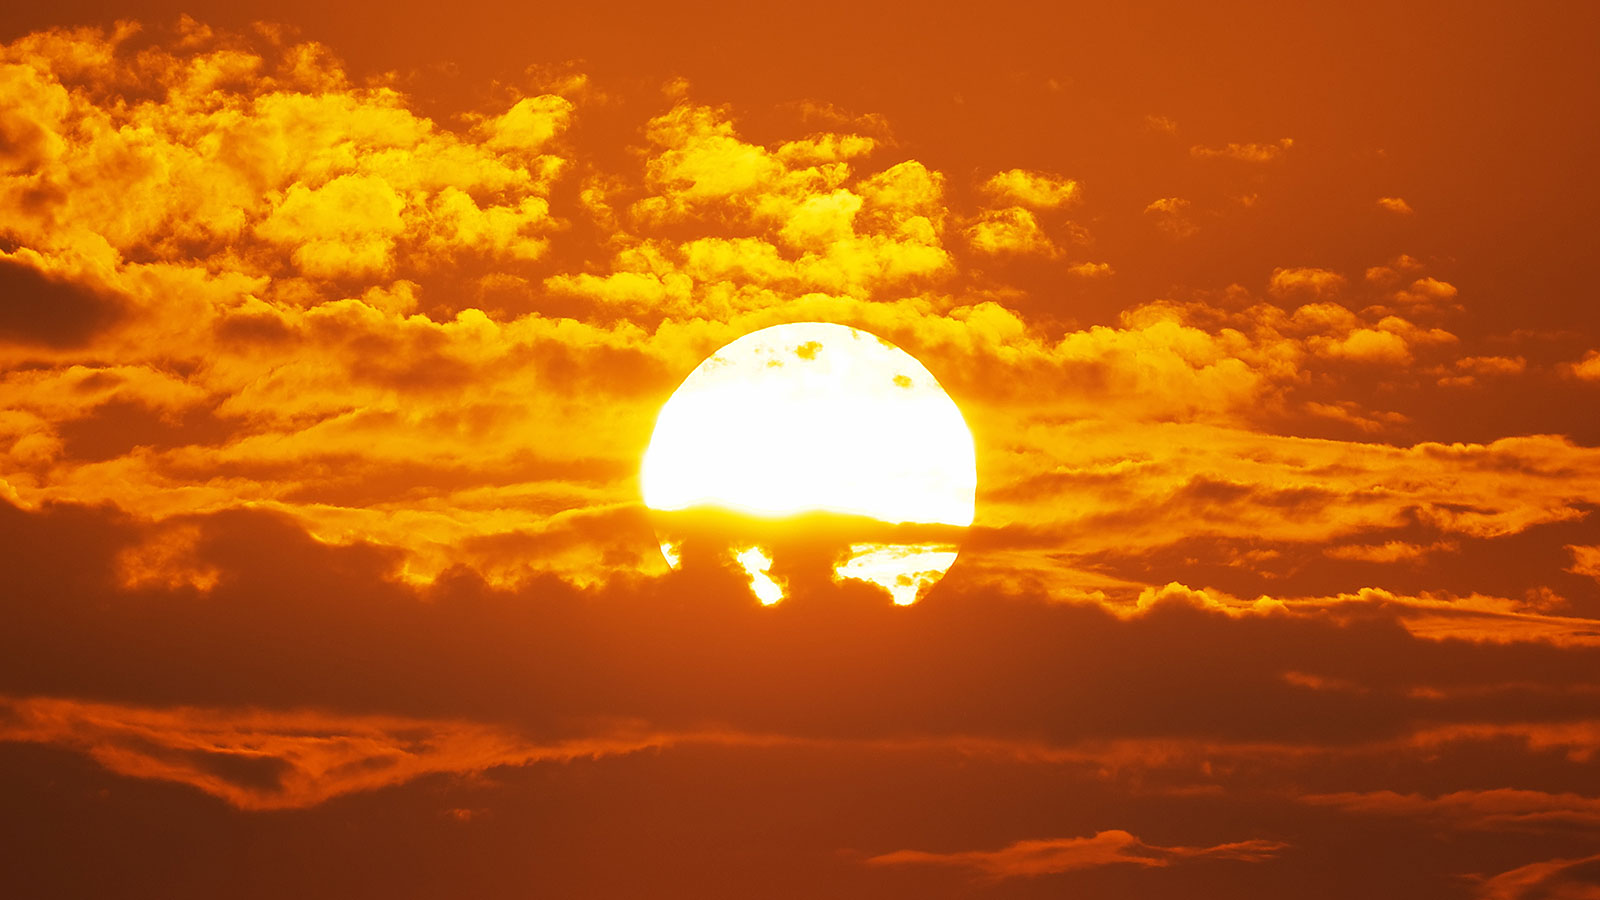 The burning question: What this summer's heatwave says about climate change